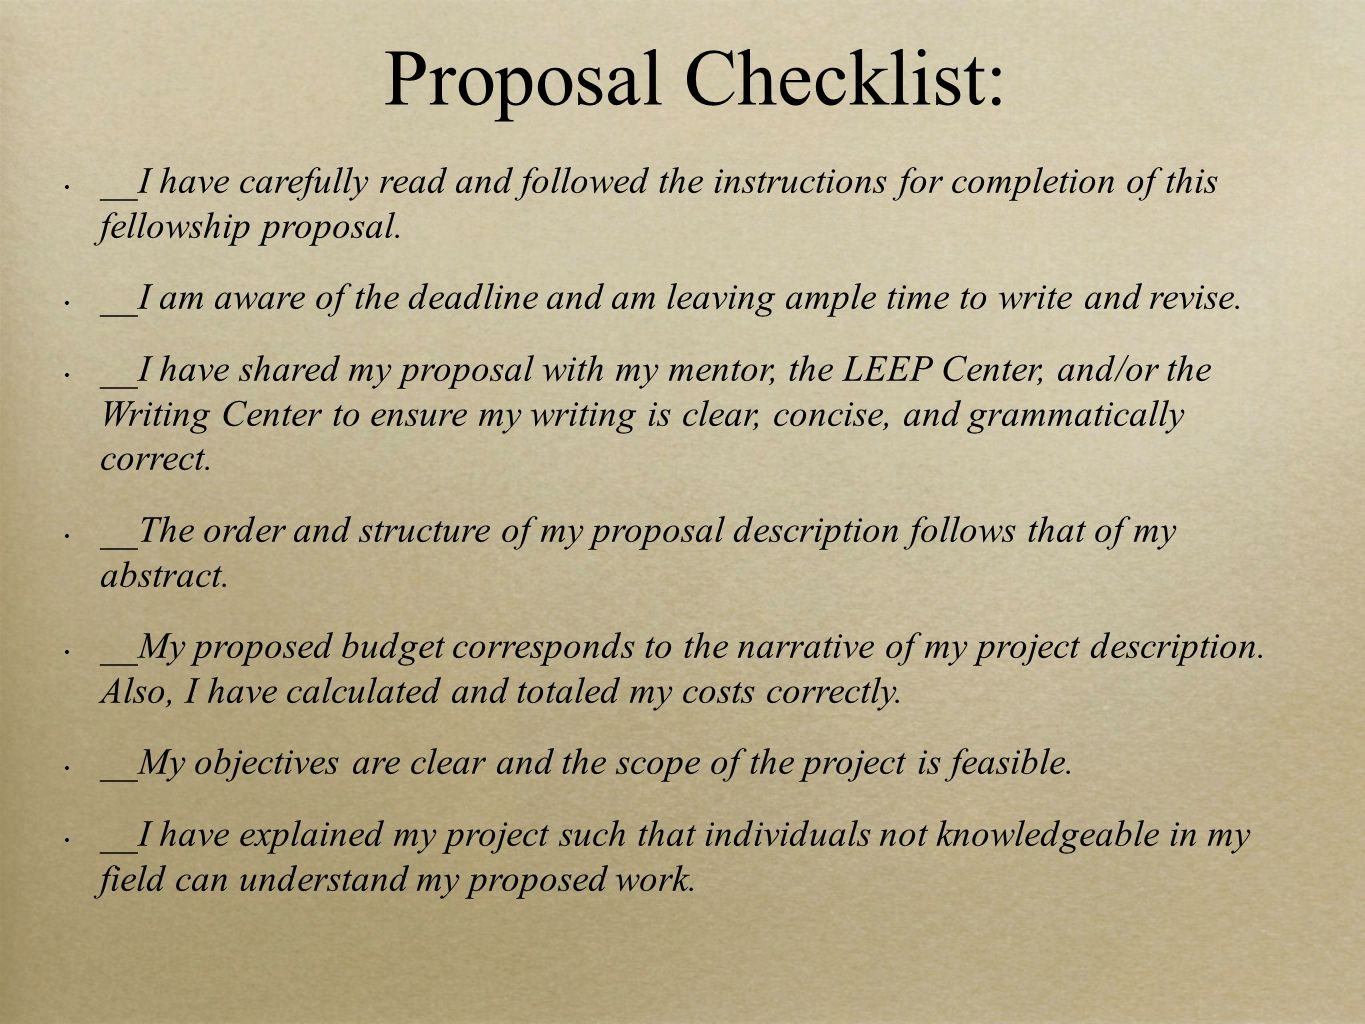 Proposal Checklist: __I have carefully read and followed the instructions for completion of this fellowship proposal.